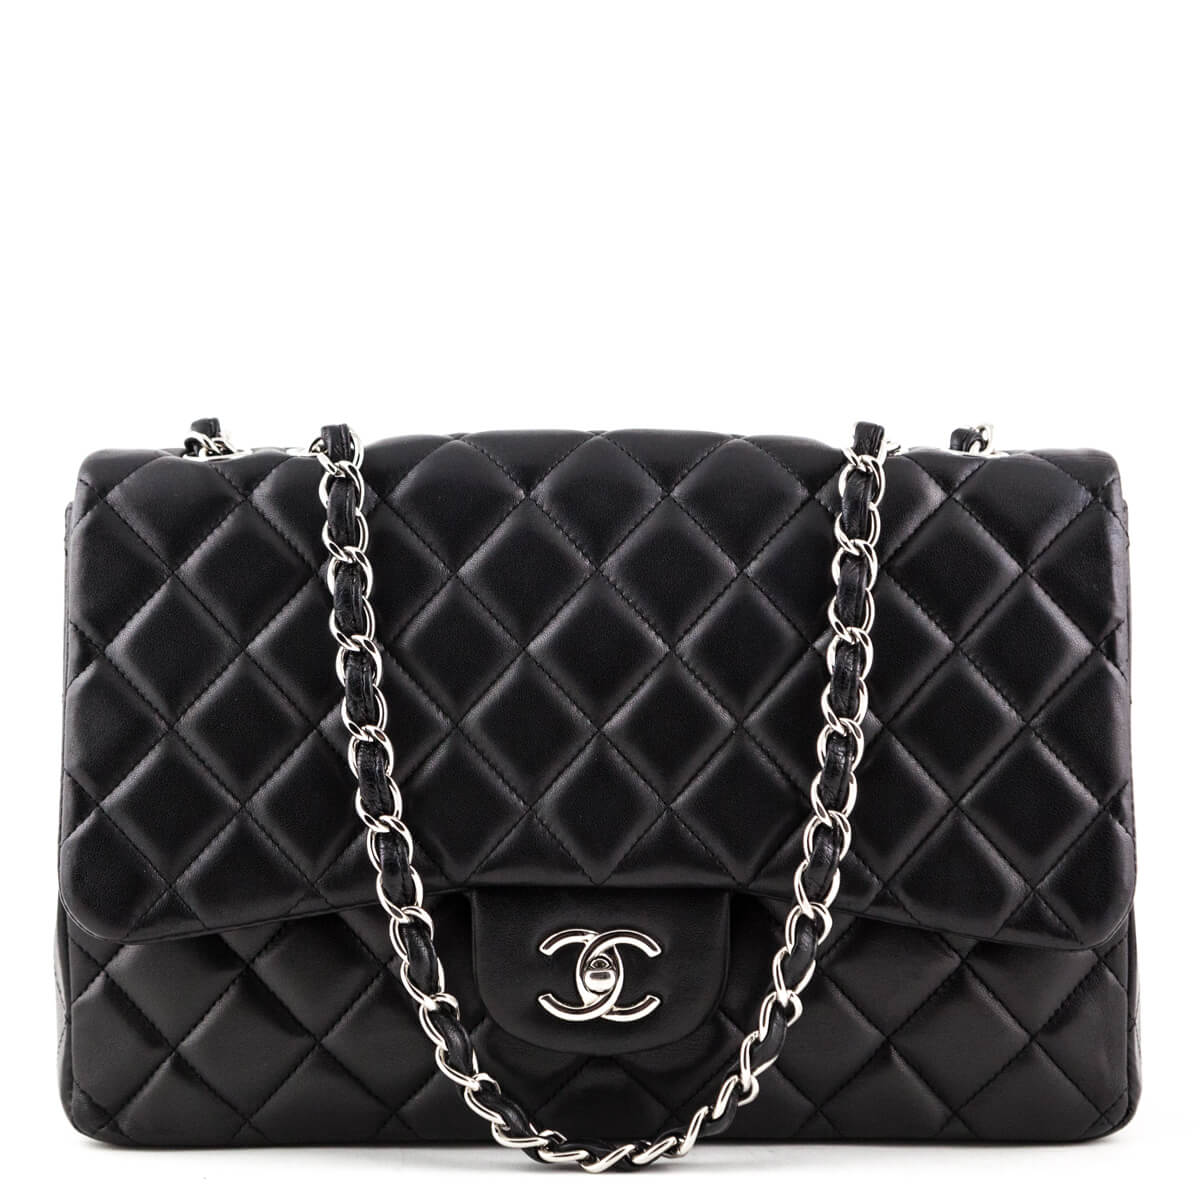 a31a6f3d9d1e Chanel Black Lambskin Jumbo Classic Single Flap Bag SHW - LOVE that BAG -  Preowned Authentic ...